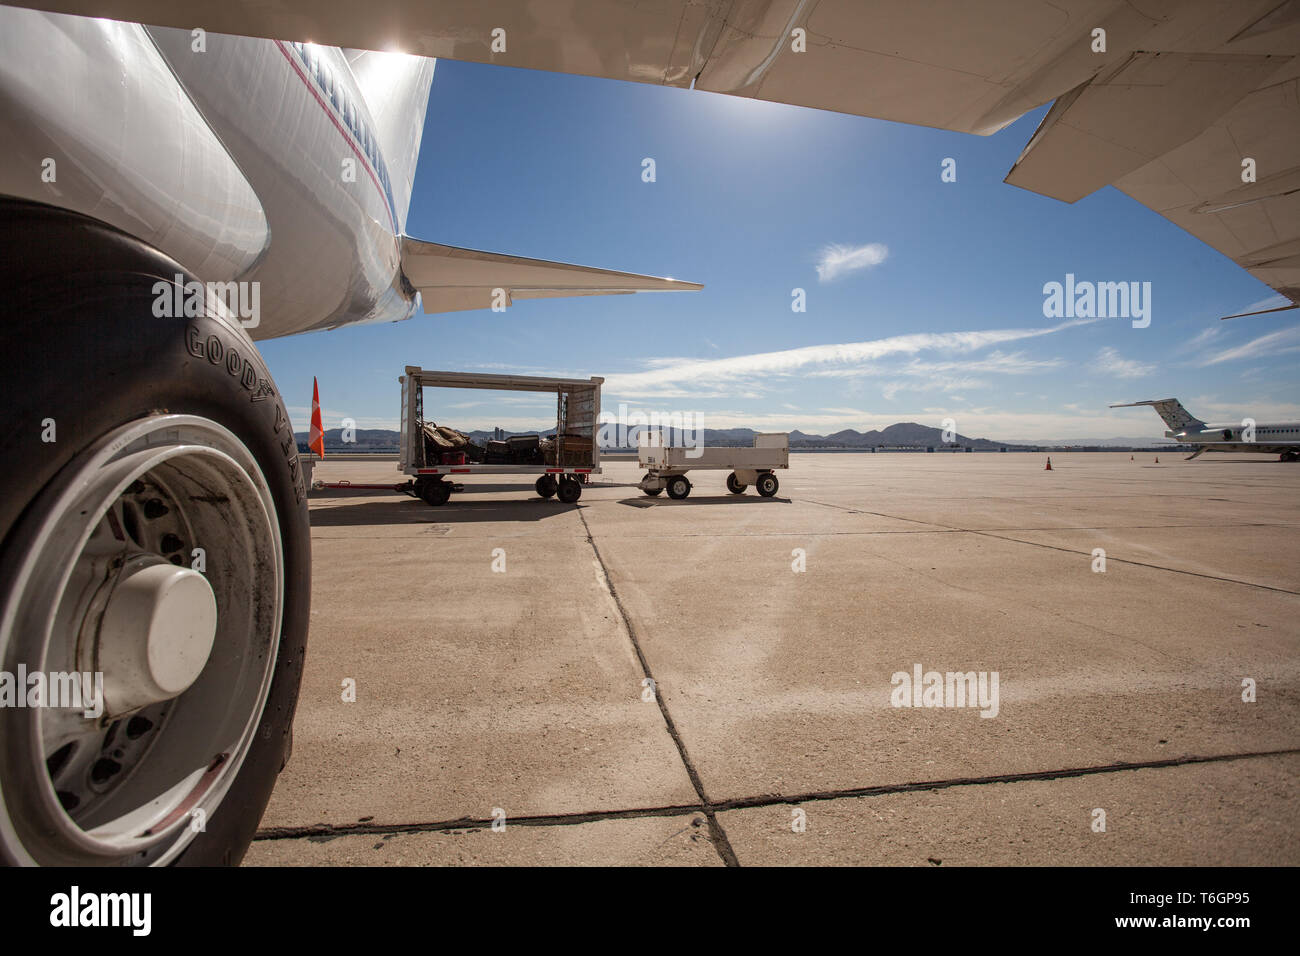 A big civil airplane standing on a tarmac at the airport. - Stock Image